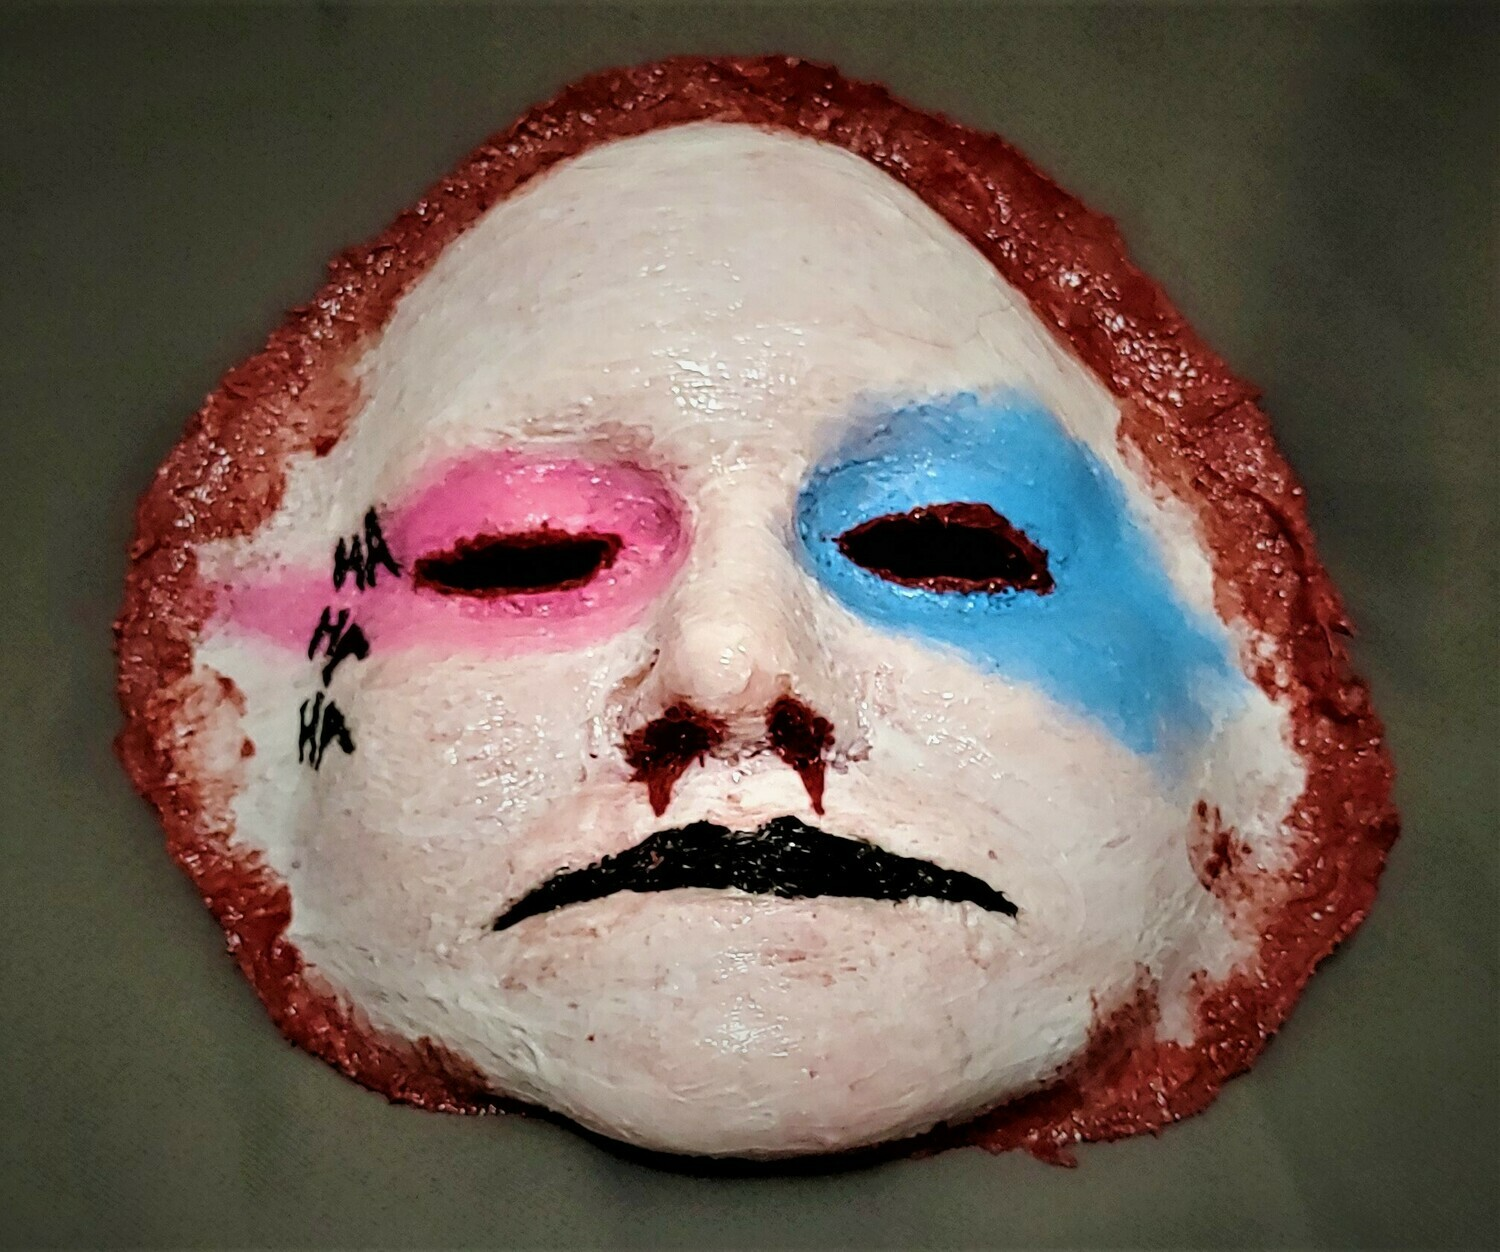 Peeled Female Clown Face